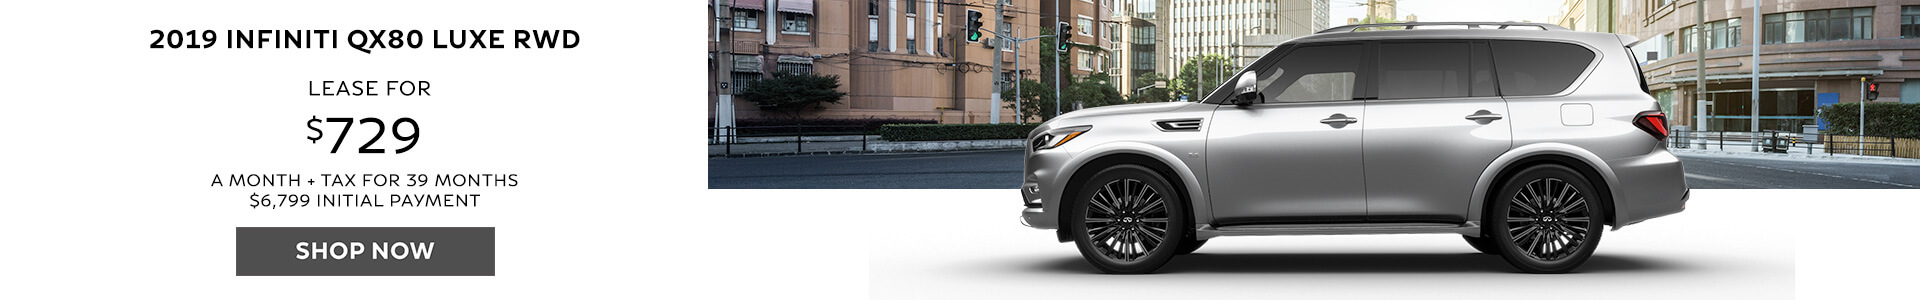 QX80 - Lease for $729